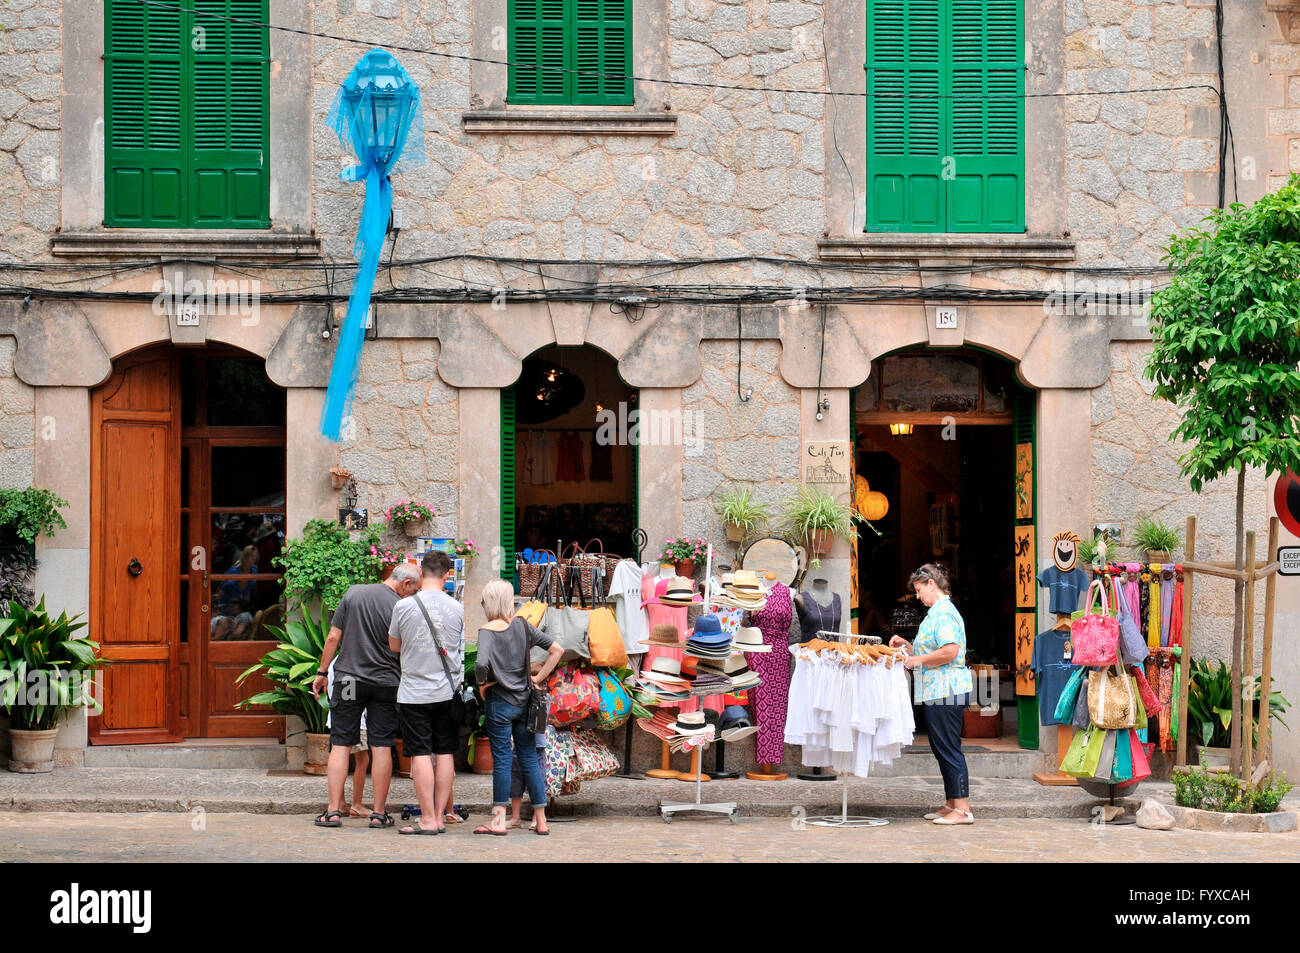 Old part of town, Valldemossa, Mallorca, Spain / souvenir shop Stock Photo